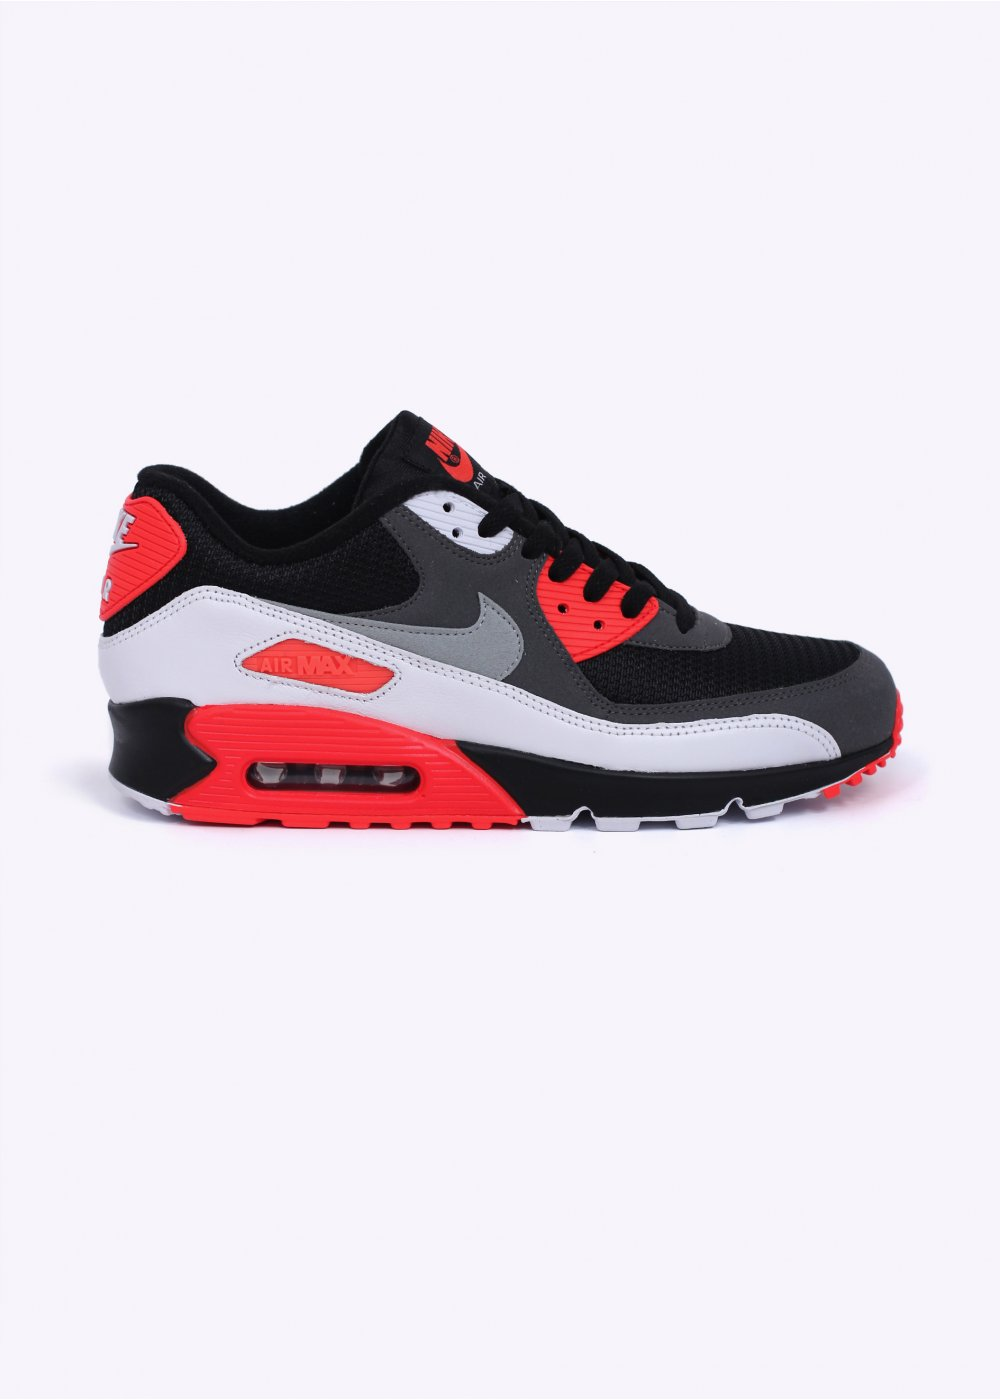 Nike Footwear Air Max 90 OG Reverse Infrared Trainers Black Neutral Grey